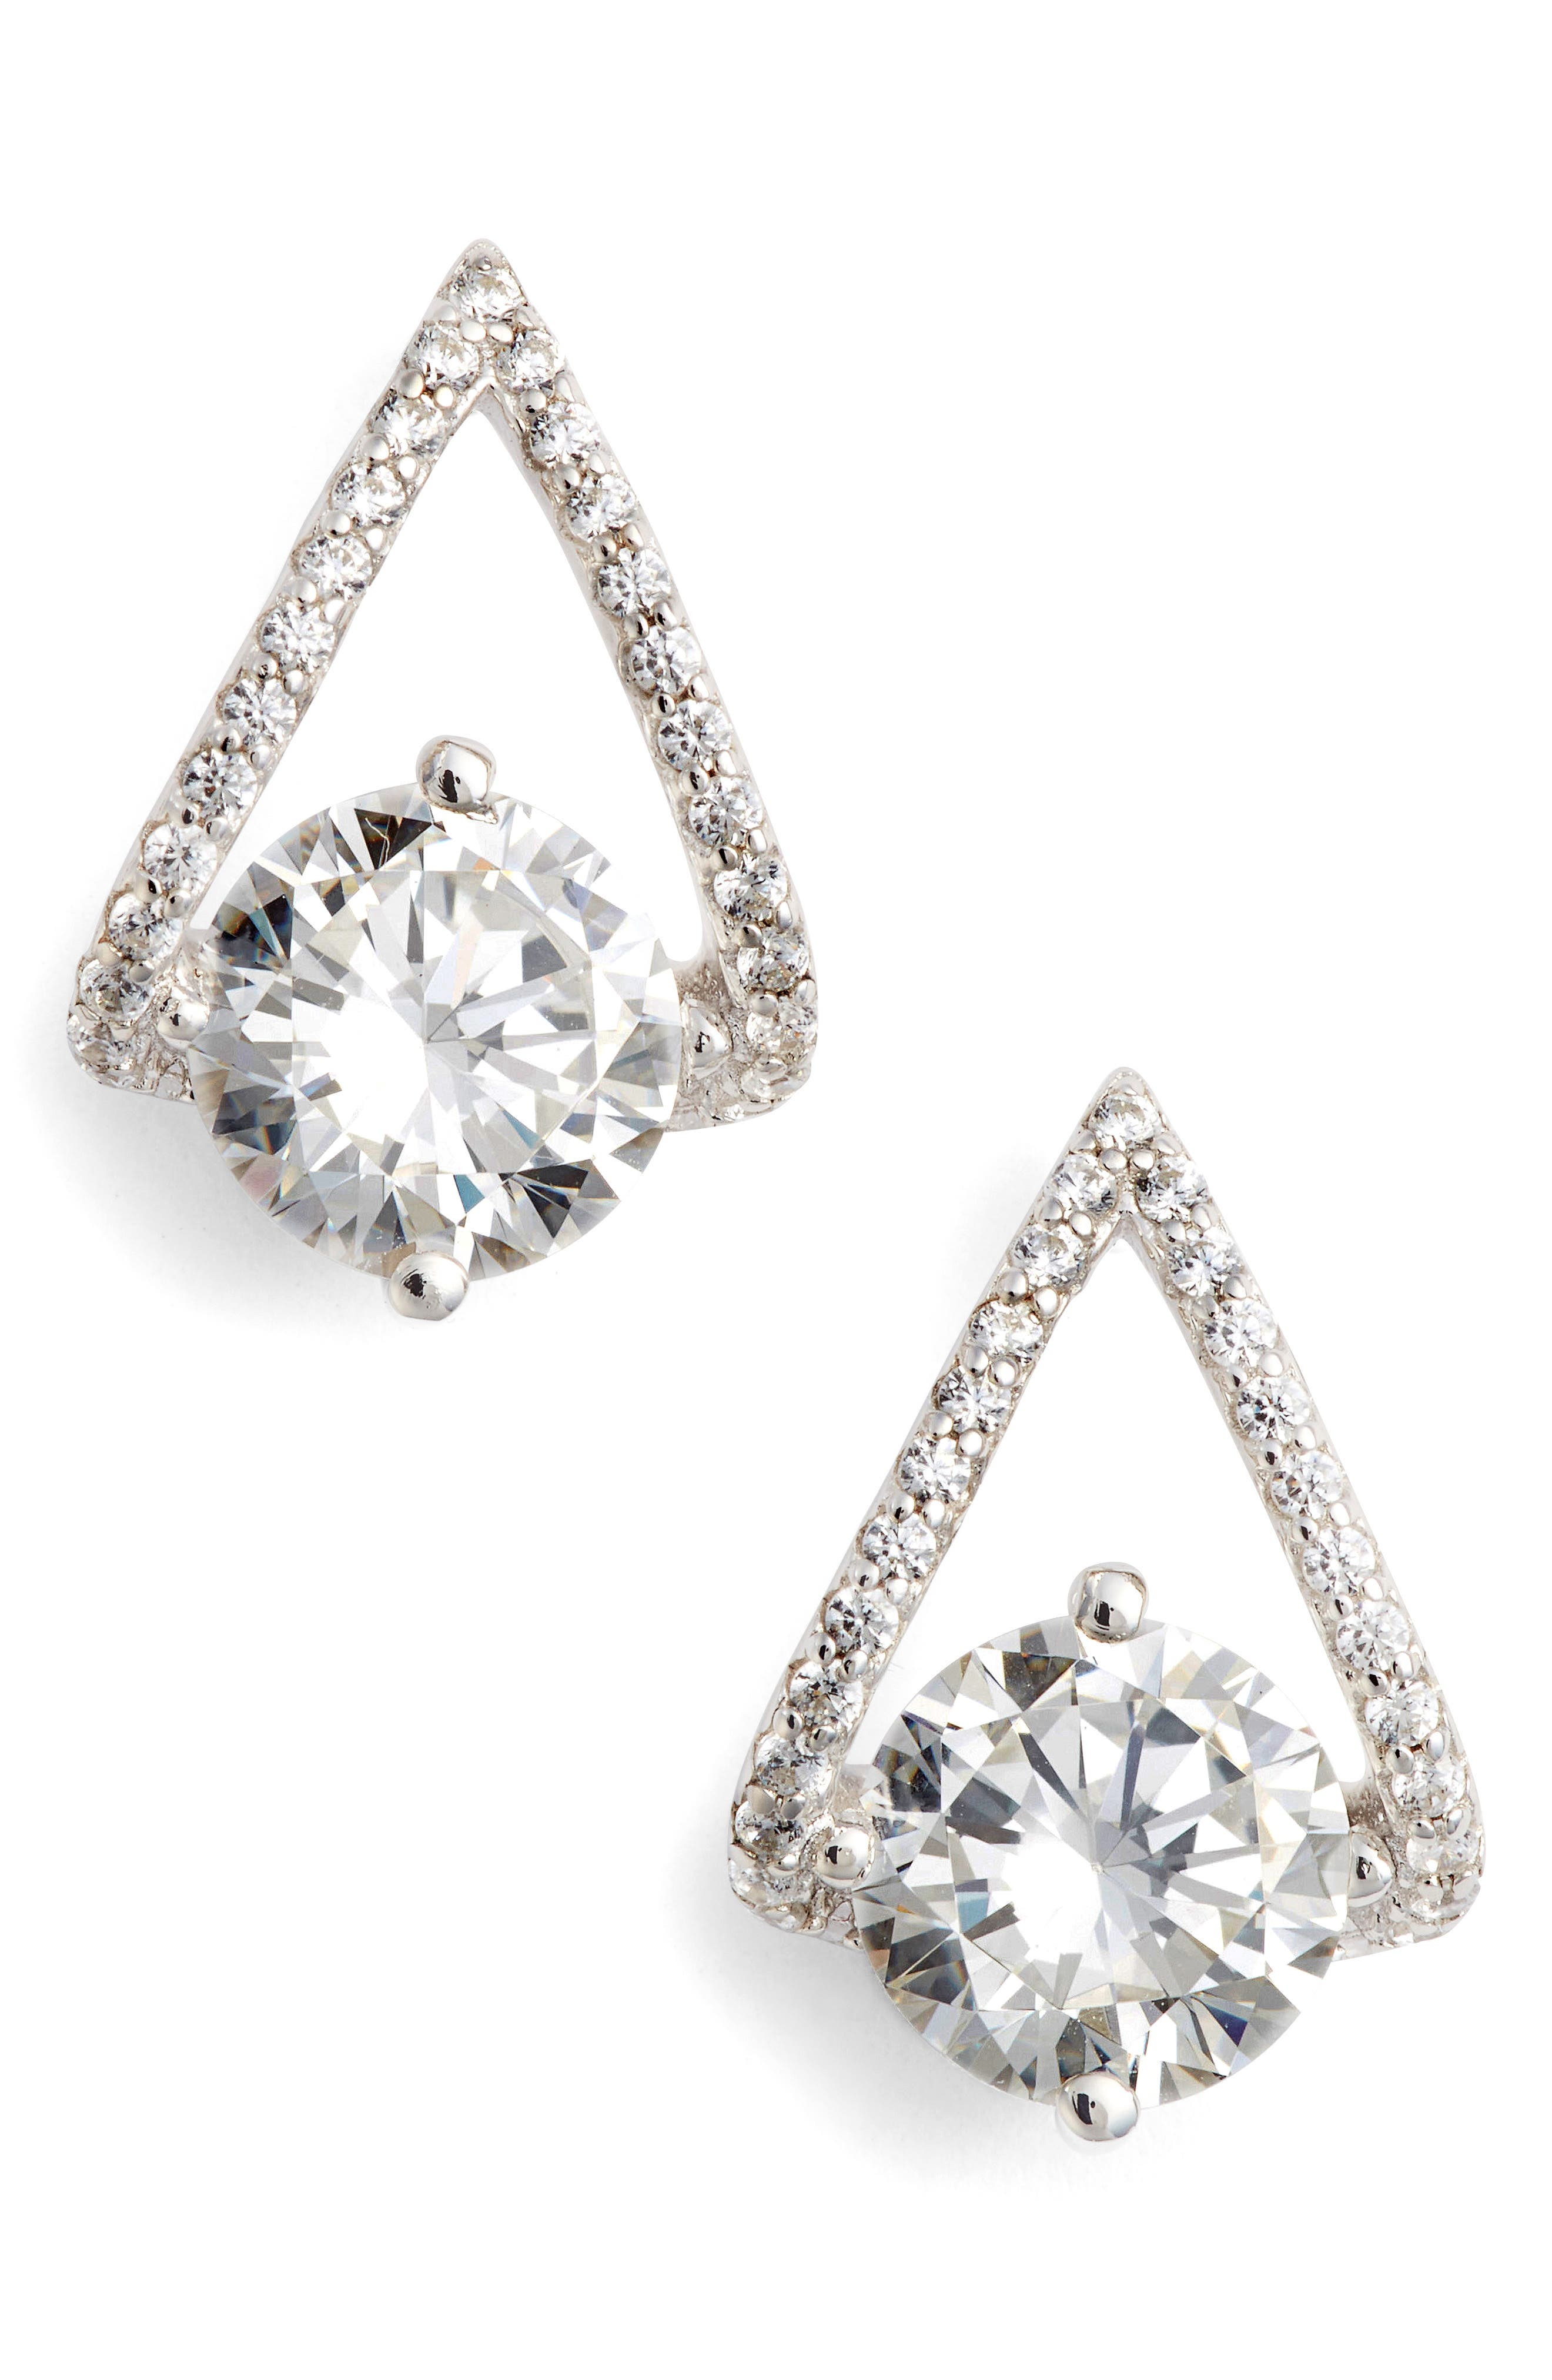 Simulated Diamond Drop Earrings,                         Main,                         color, Silver/ Clear